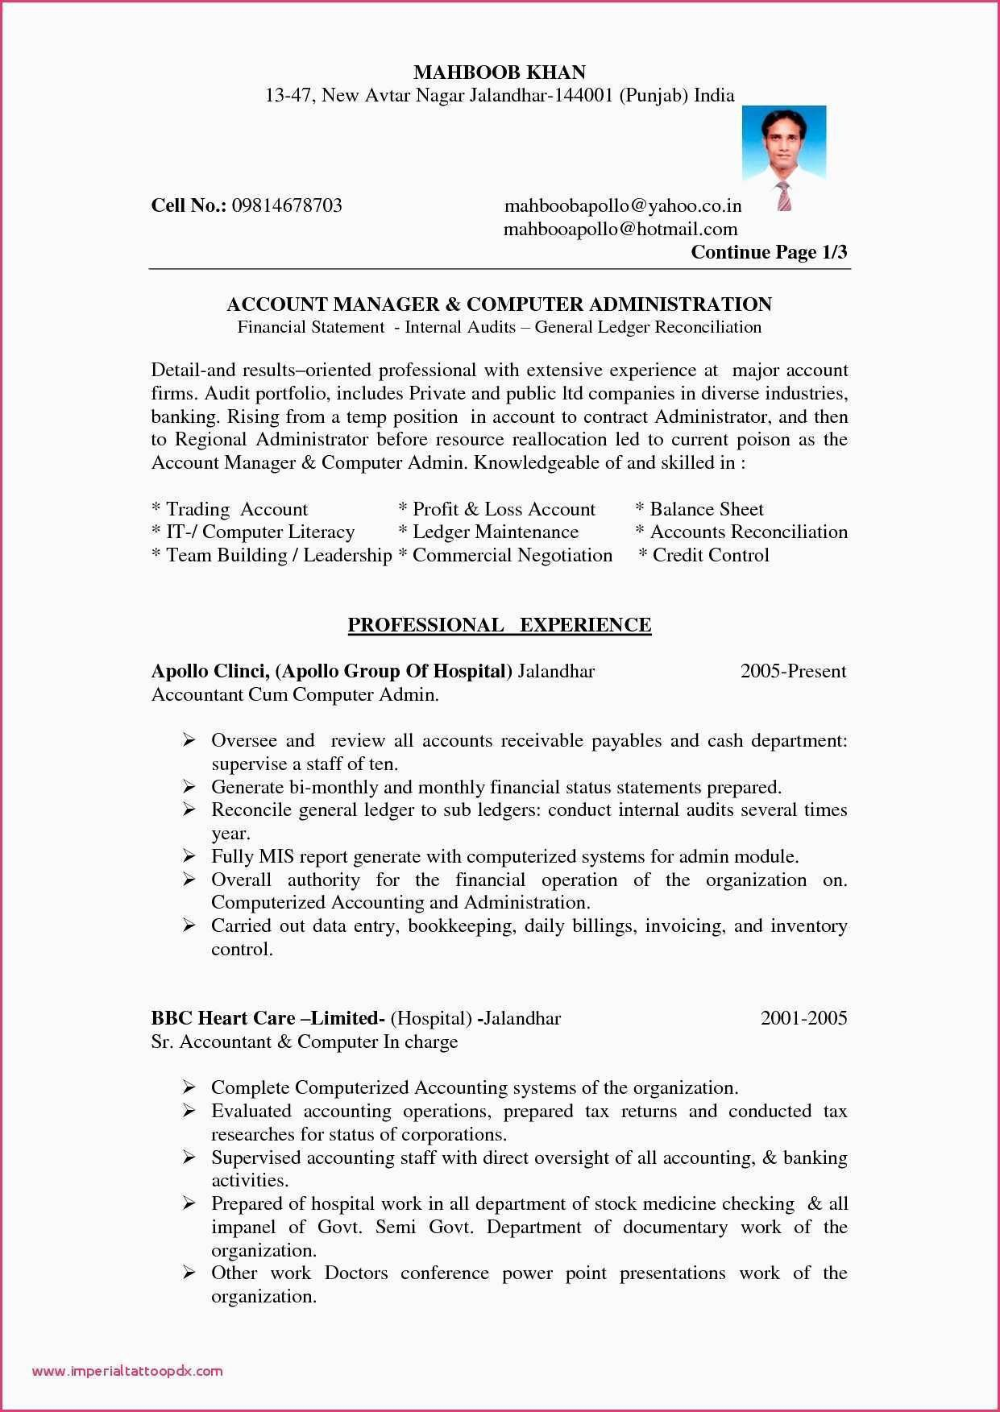 Sample Profit And Loss Statement And Balance Sheet Of Balance Sheet Throughout Certificate Of Analysis Resume Format In Word Accounting Jobs Accountant Resume